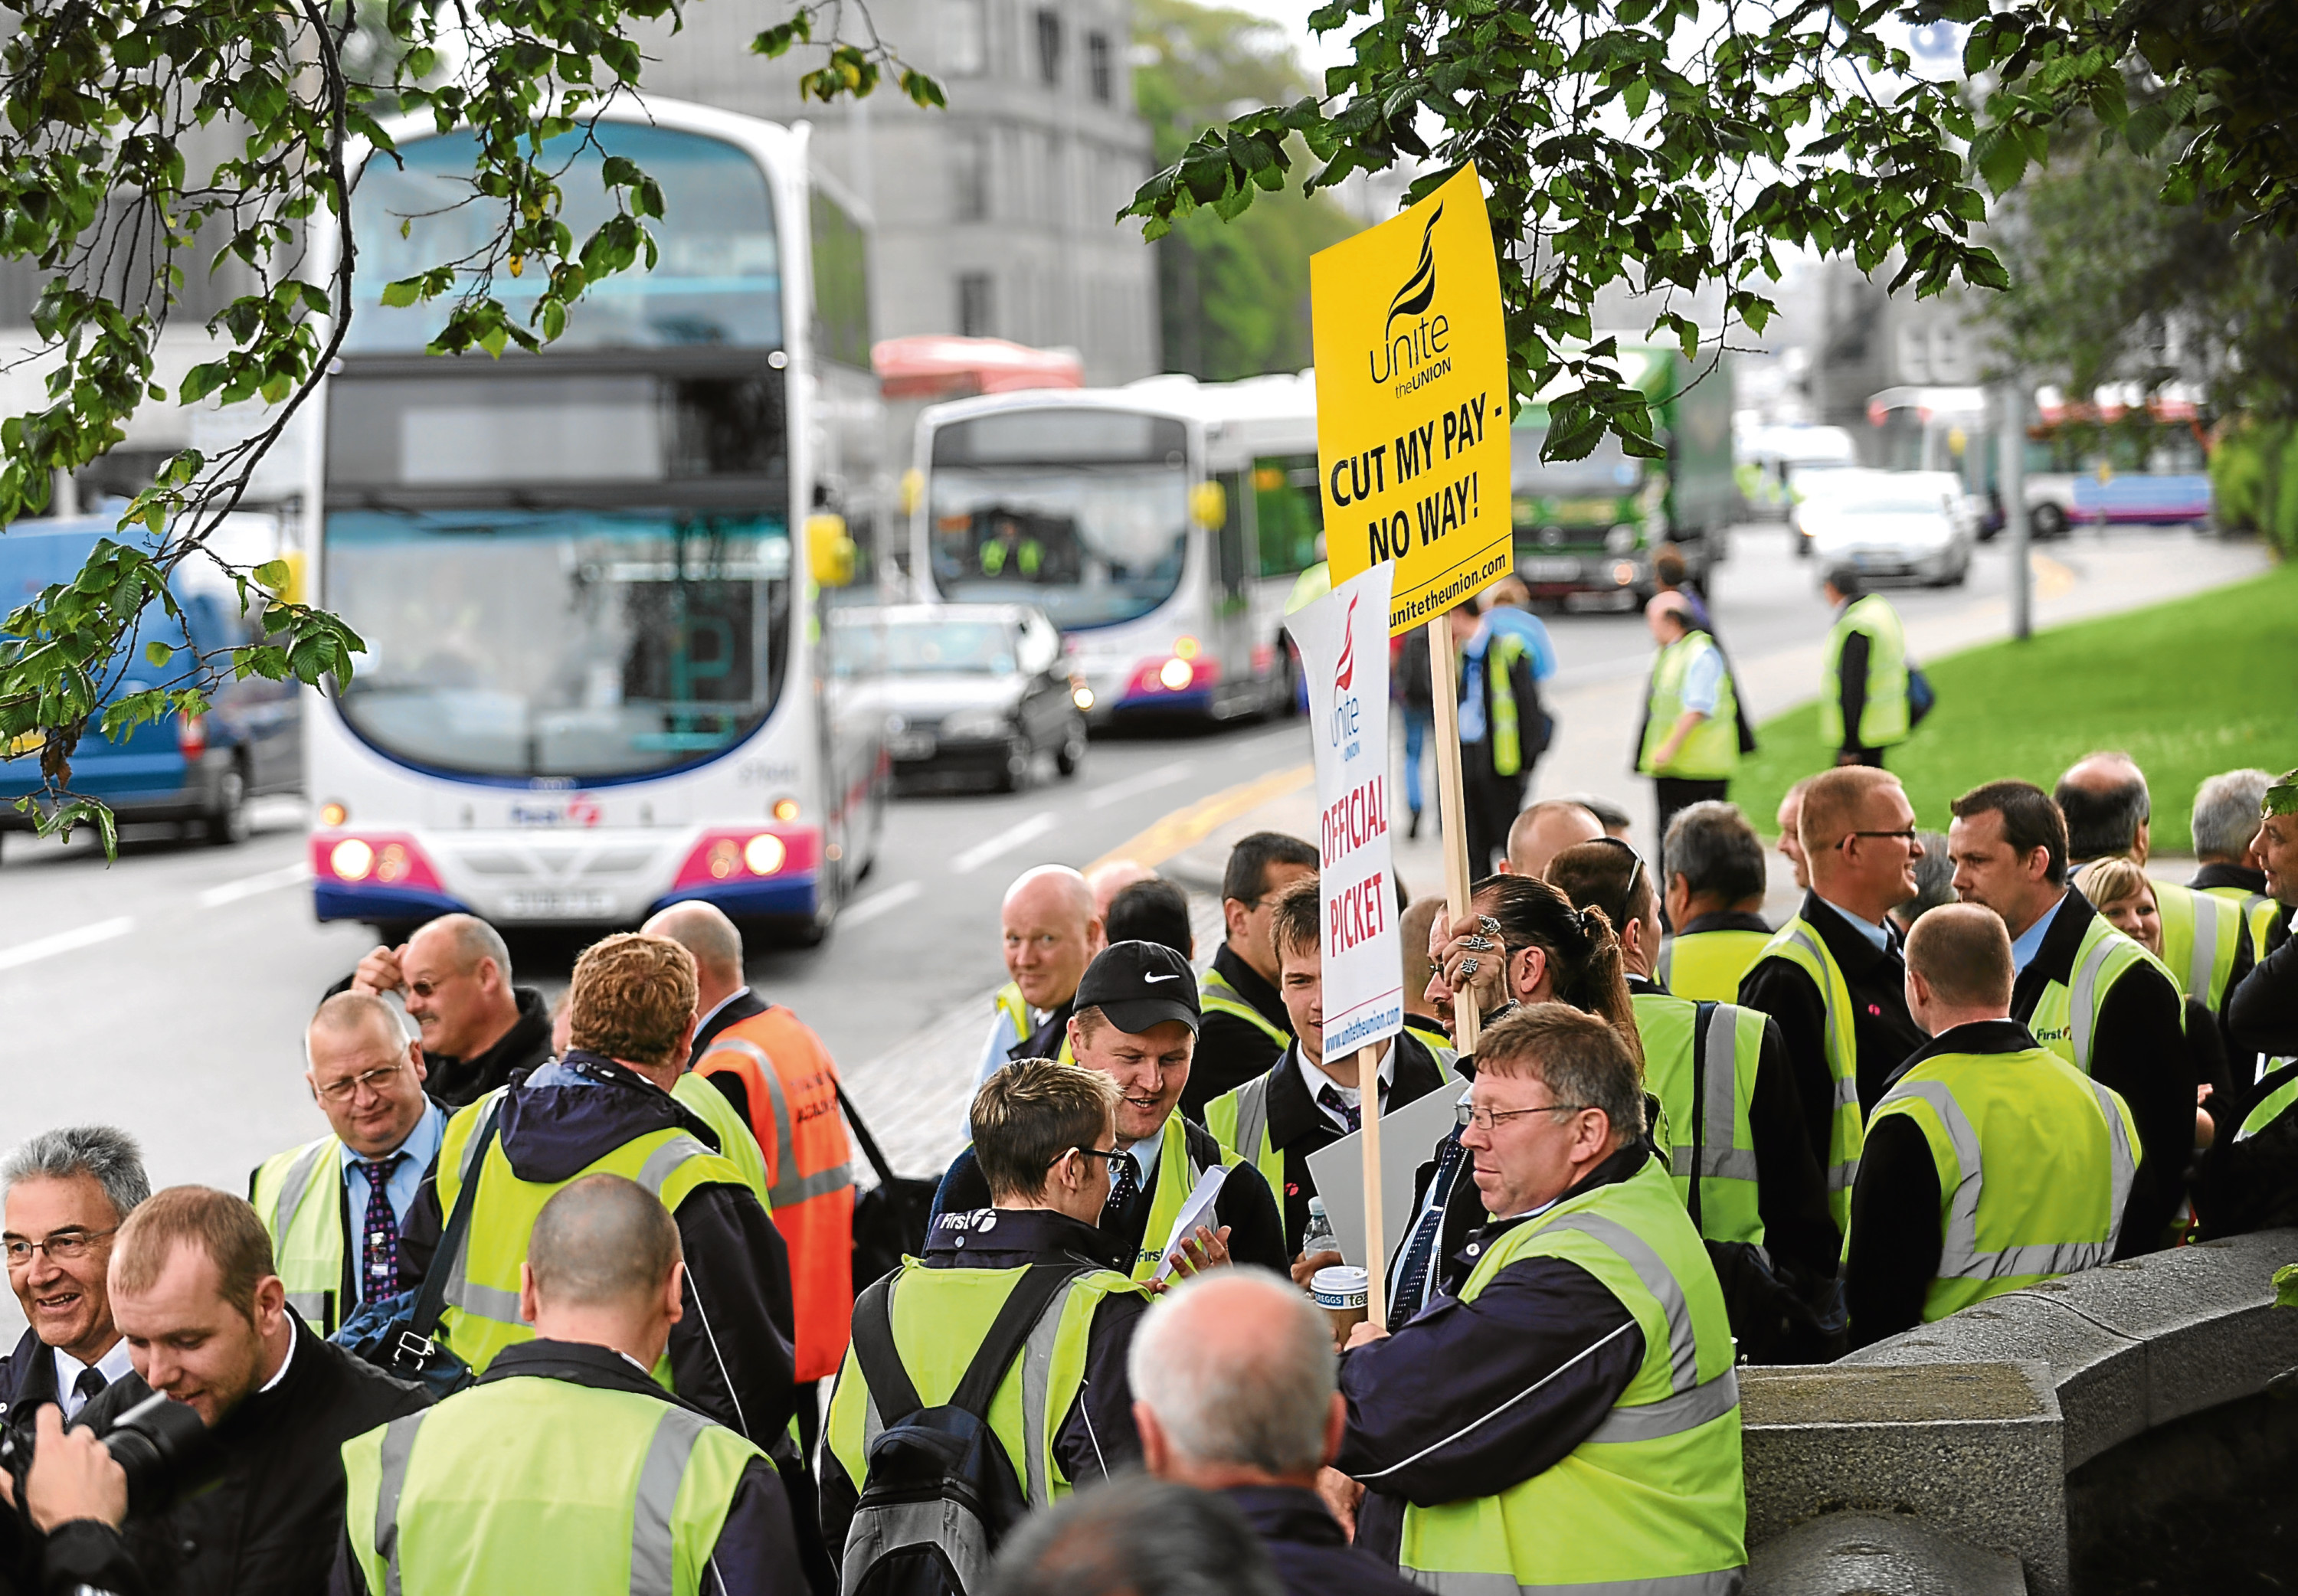 Striking First Aberdeen staff on the picket line during a dispute in 2009.